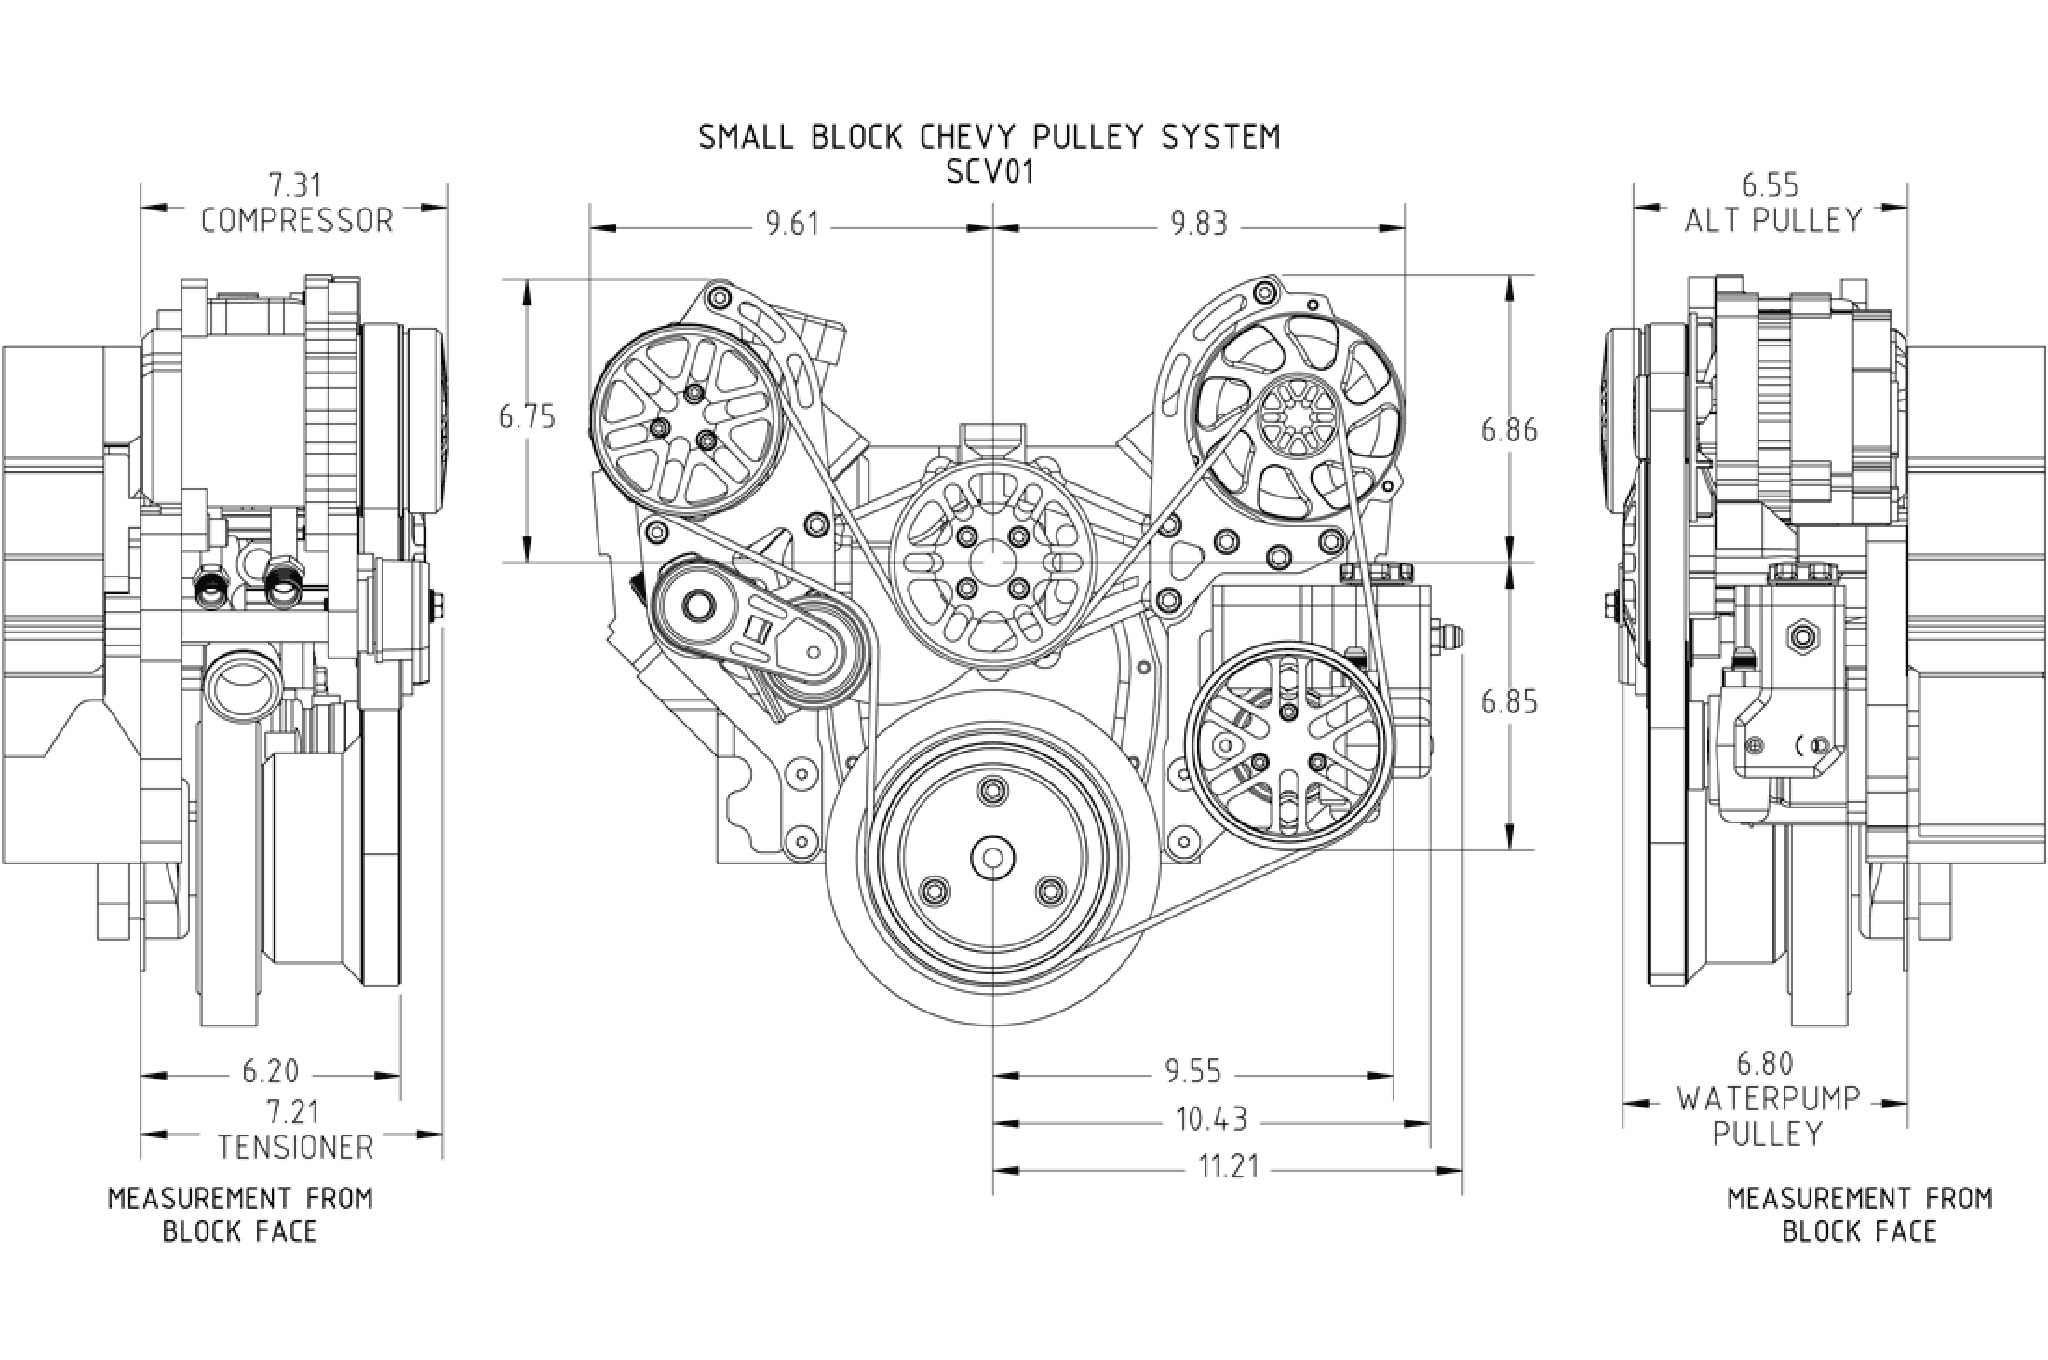 3800 V6 Engine Diagram 2005 Buick Lacrosse. Buick. Auto